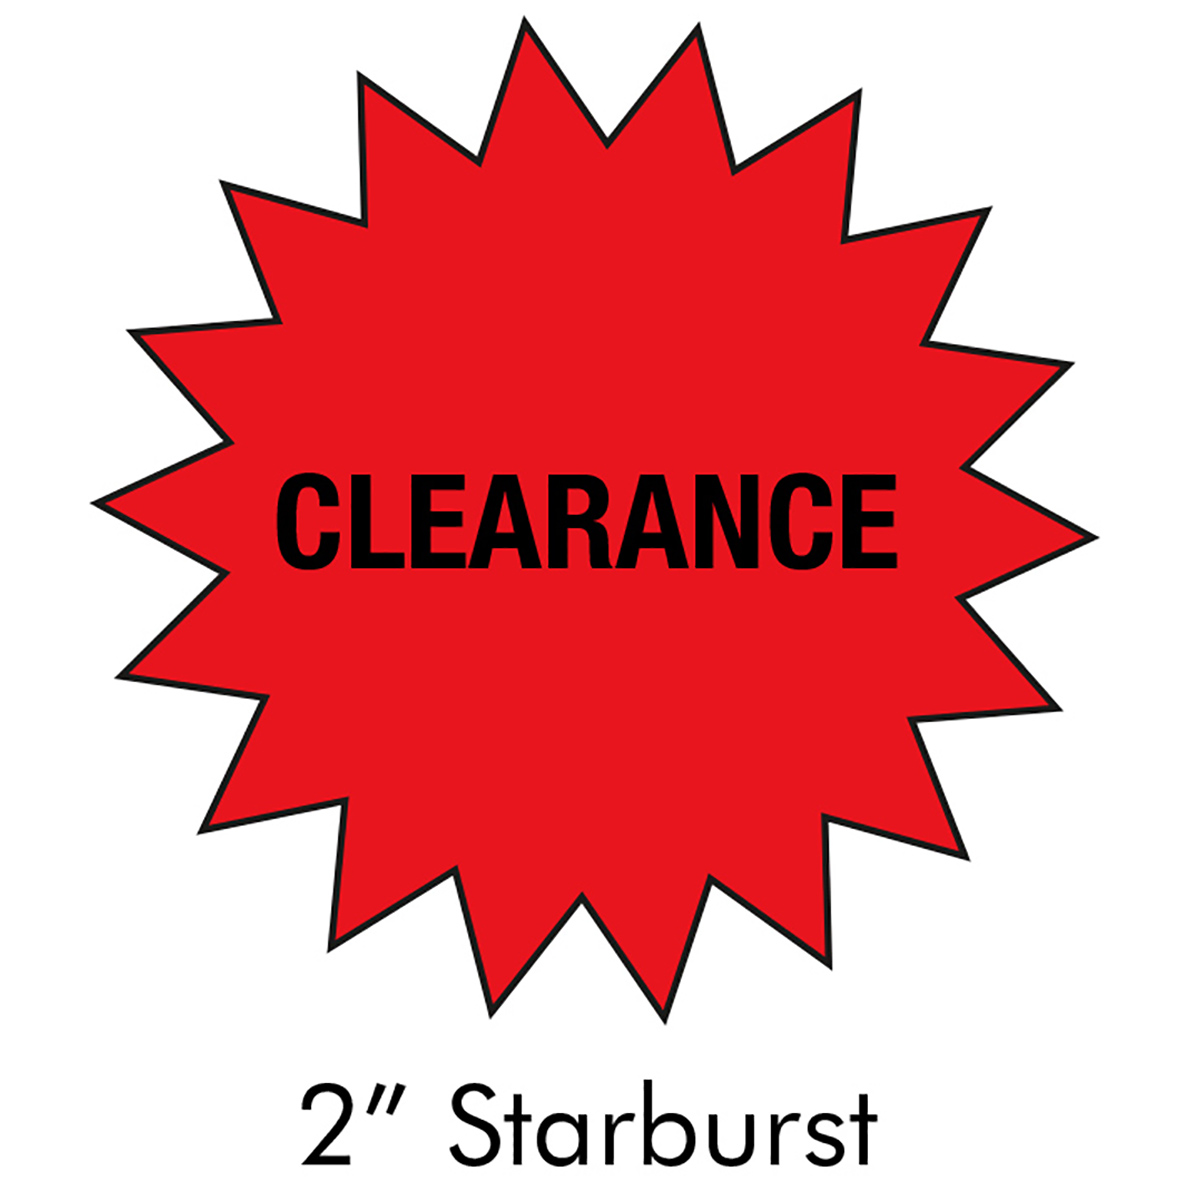 "2"" Starburst Clearance Label"